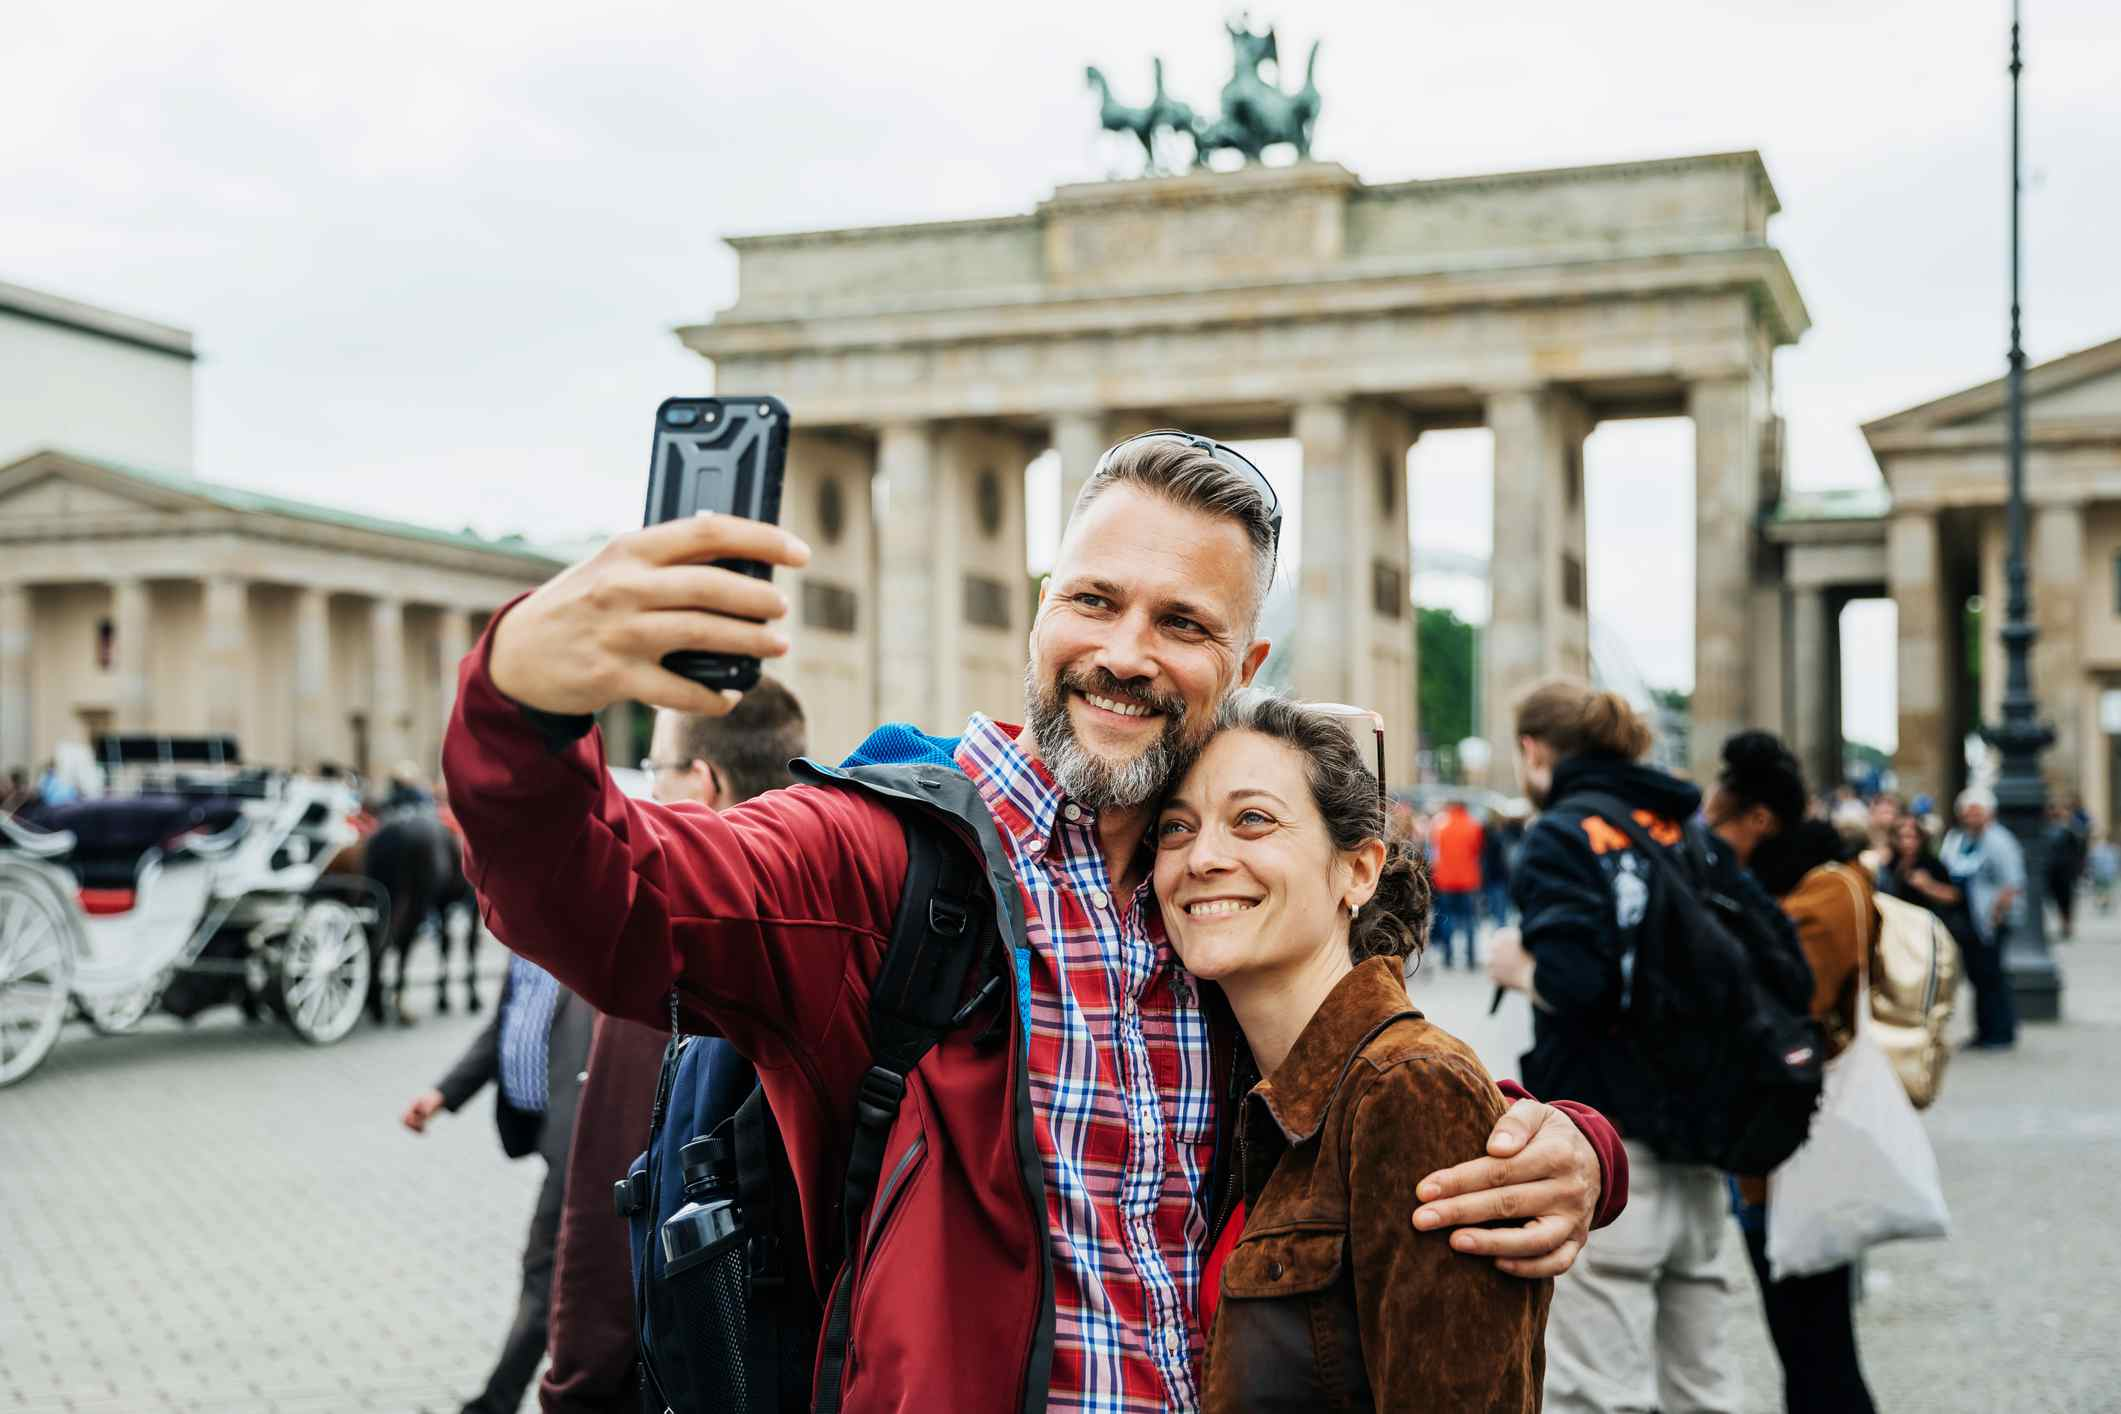 Couple in Germany at Brandenburger Tor